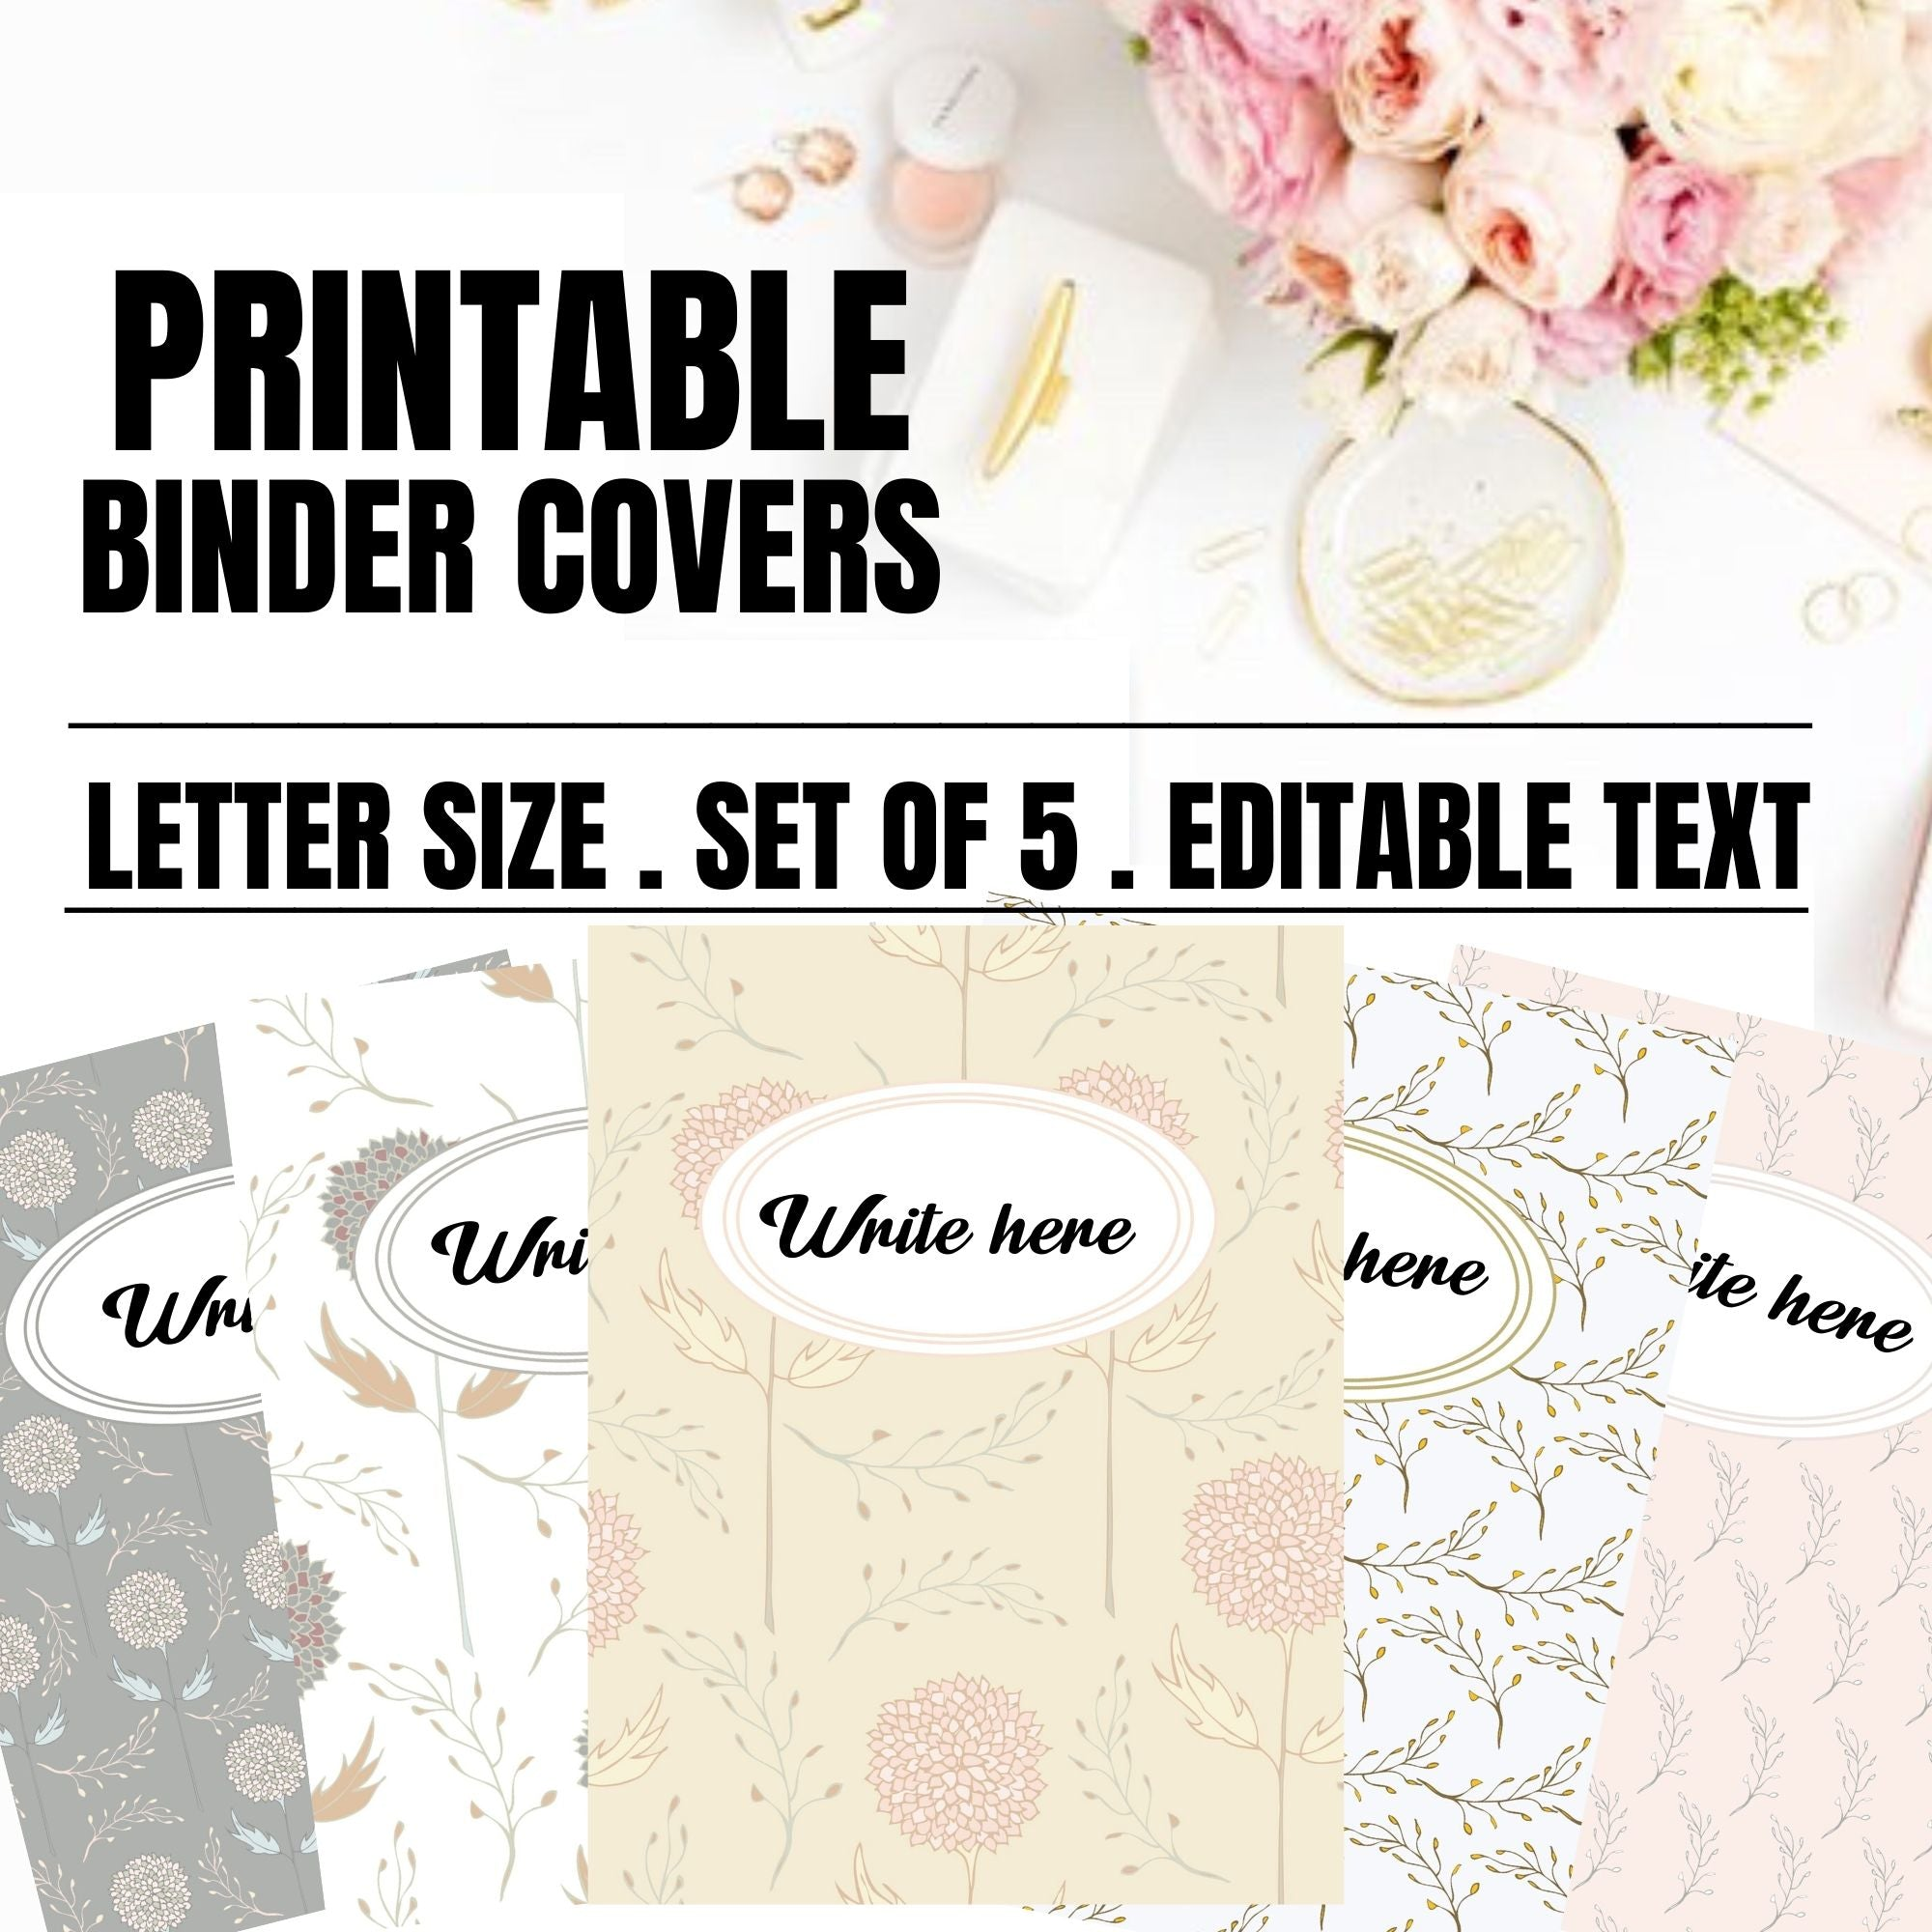 Editable Printable Binder Covers I Floral Pink Binder Covers I Binder Inserts I Printable Binder Covers and Spines I Shabby Chic Binder